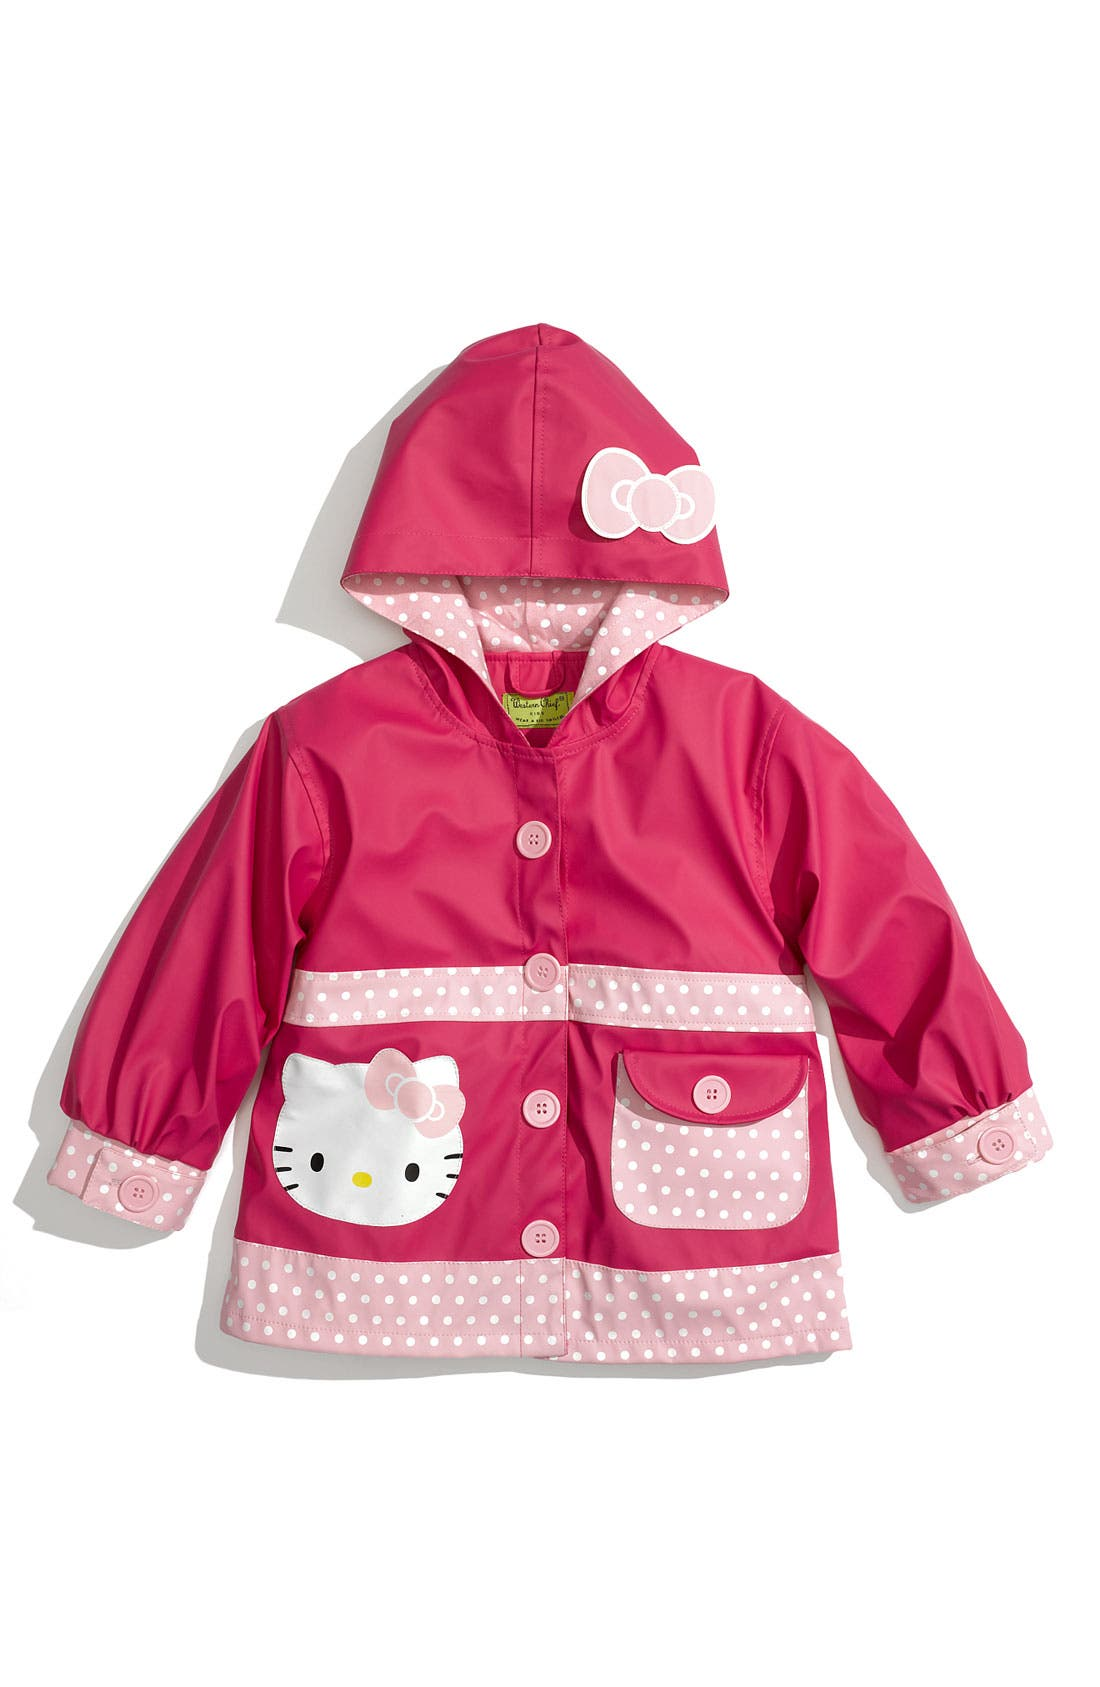 Alternate Image 1 Selected - Western Chief 'Hello Kitty® Ruffles' Raincoat (Toddler Girls & Little Girls)